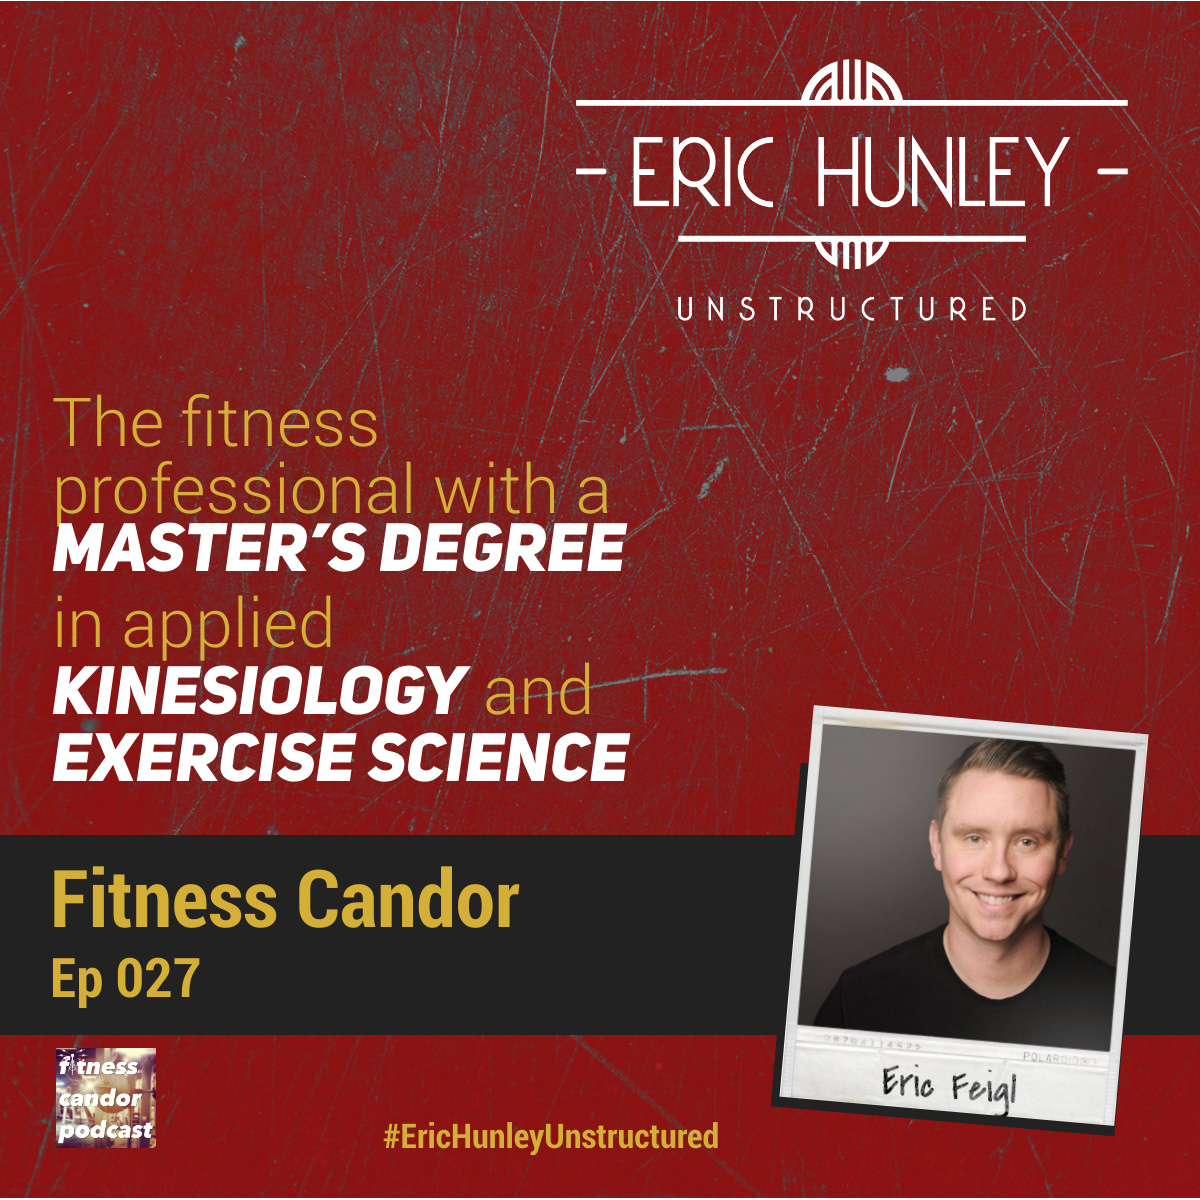 Eric Hunley Unstructured Podcast - 027 Eric Feigl Square Post